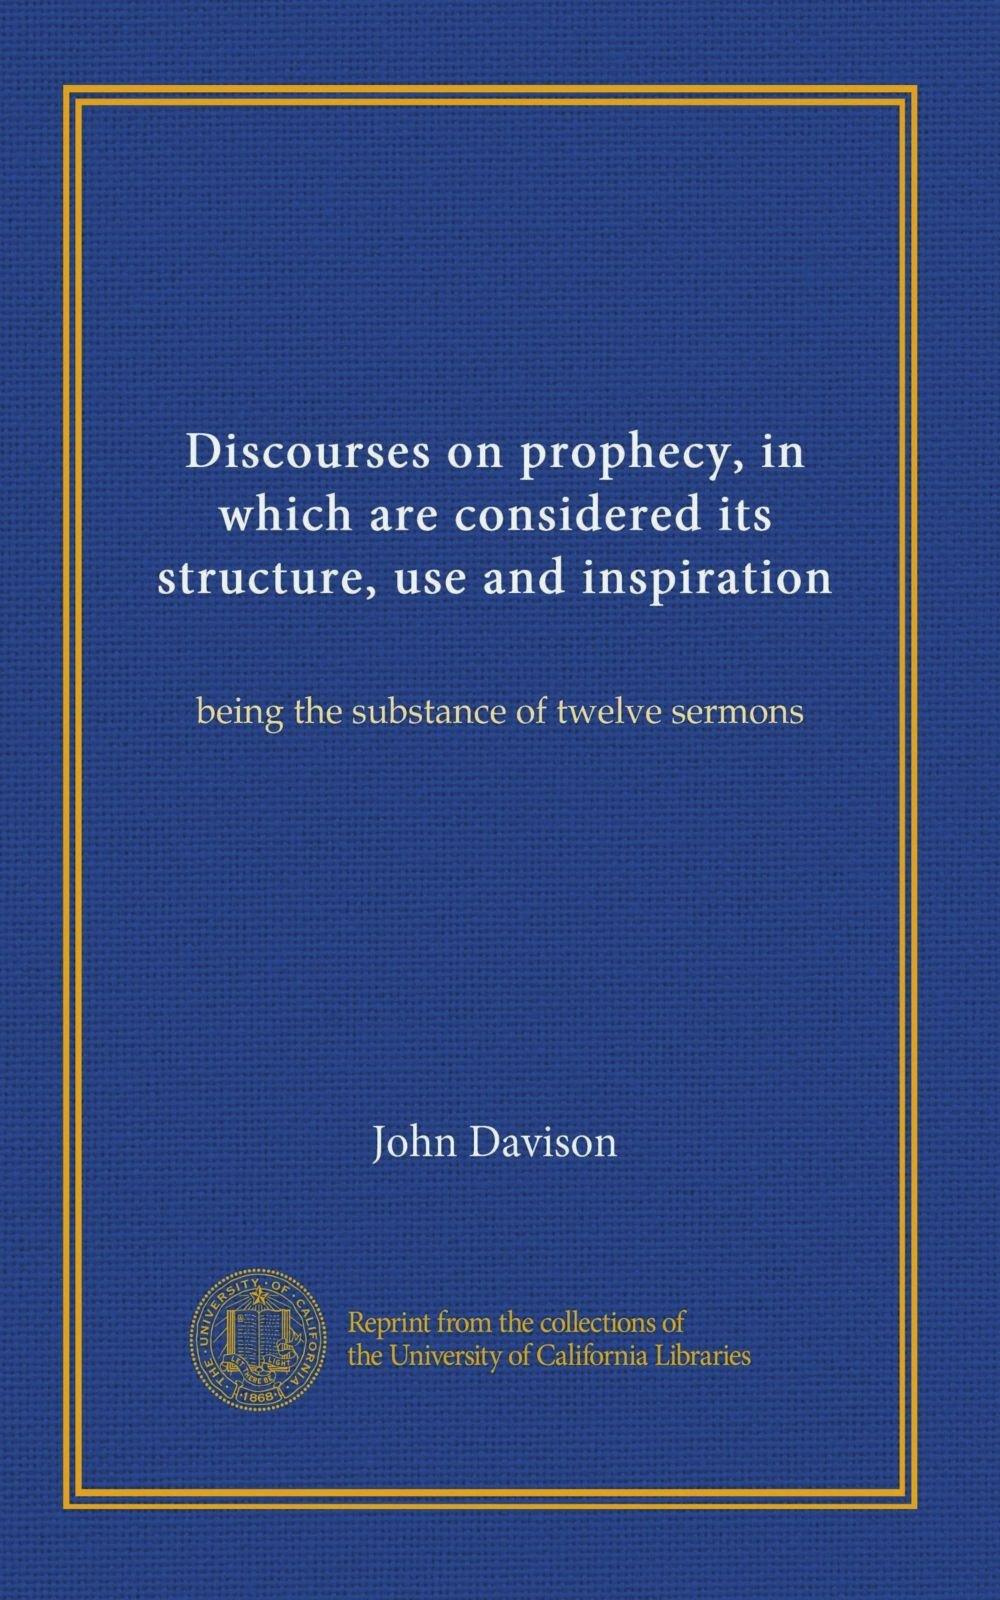 Discourses on prophecy, in which are considered its structure, use and inspiration: being the substance of twelve sermons pdf epub